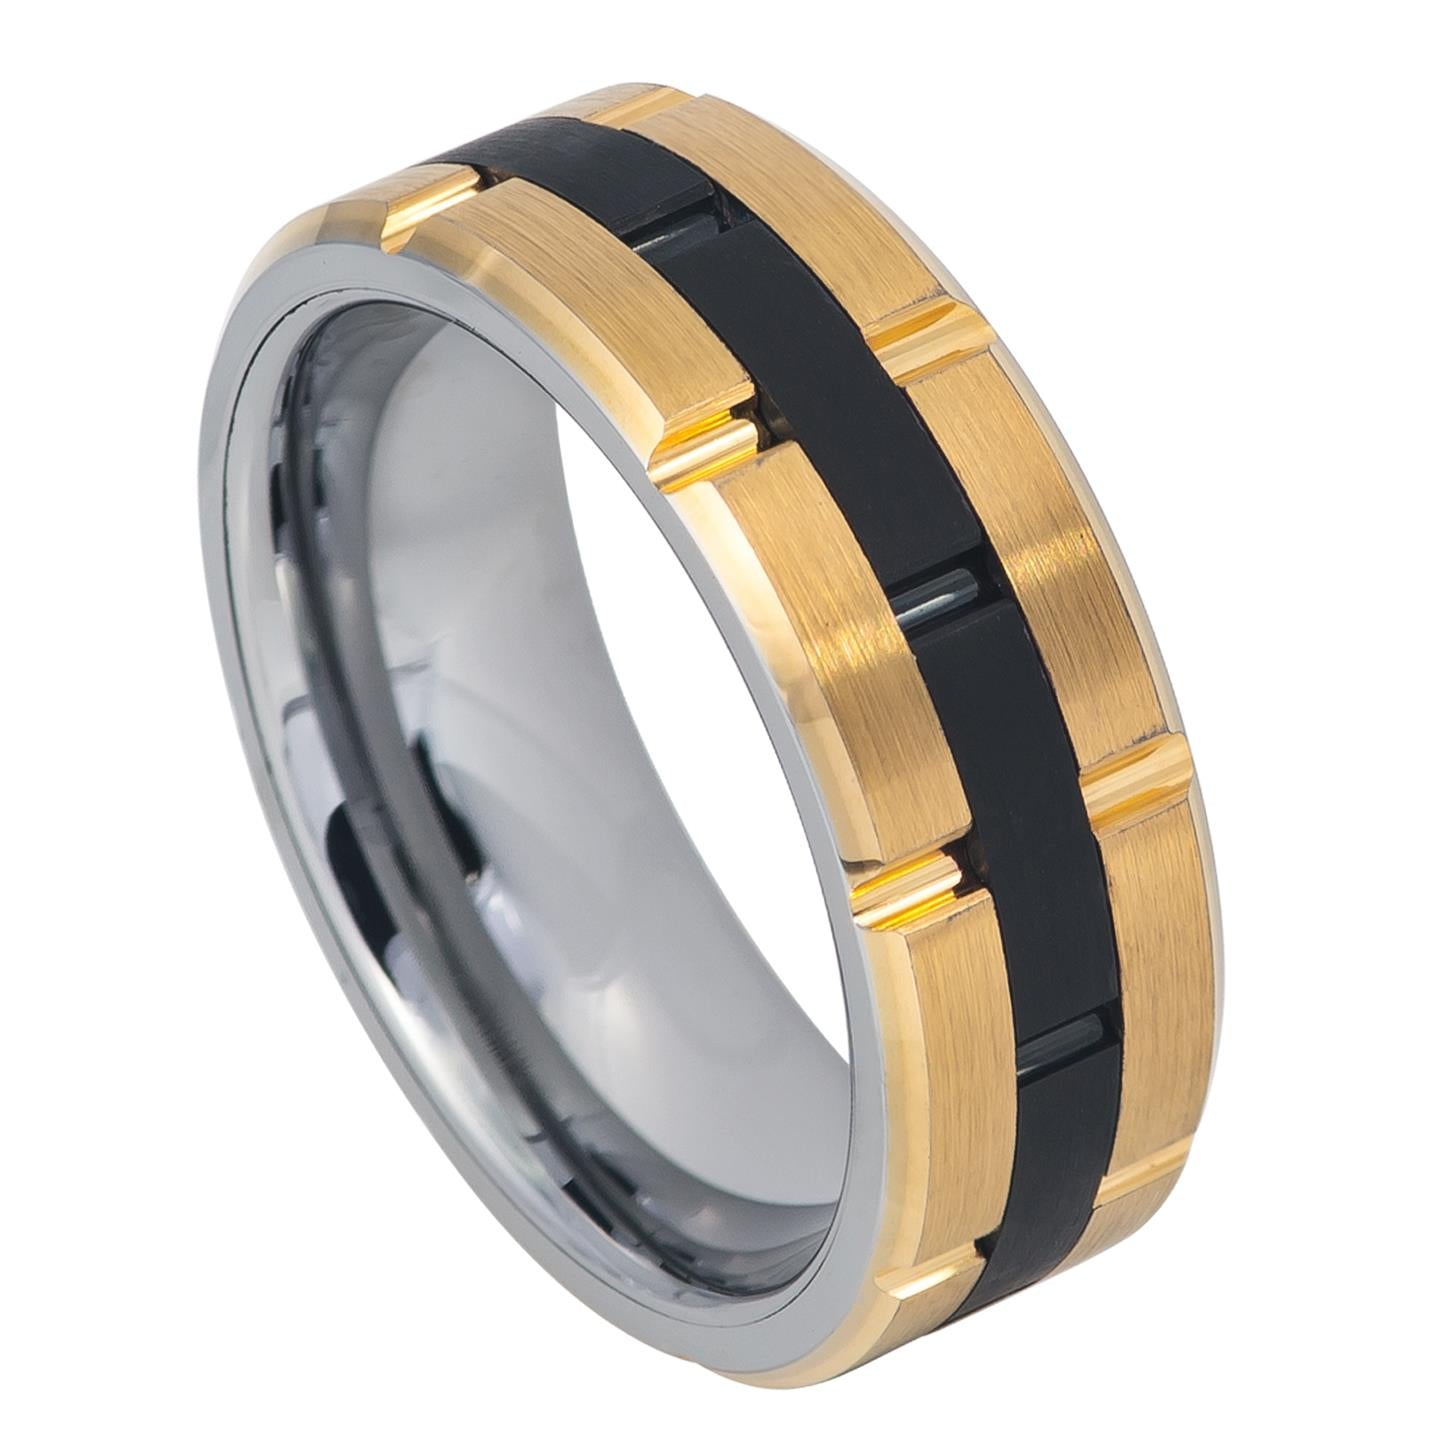 8mm Tungsten Ring Yellow Gold IP Plated Sides Grooved Black IP Center